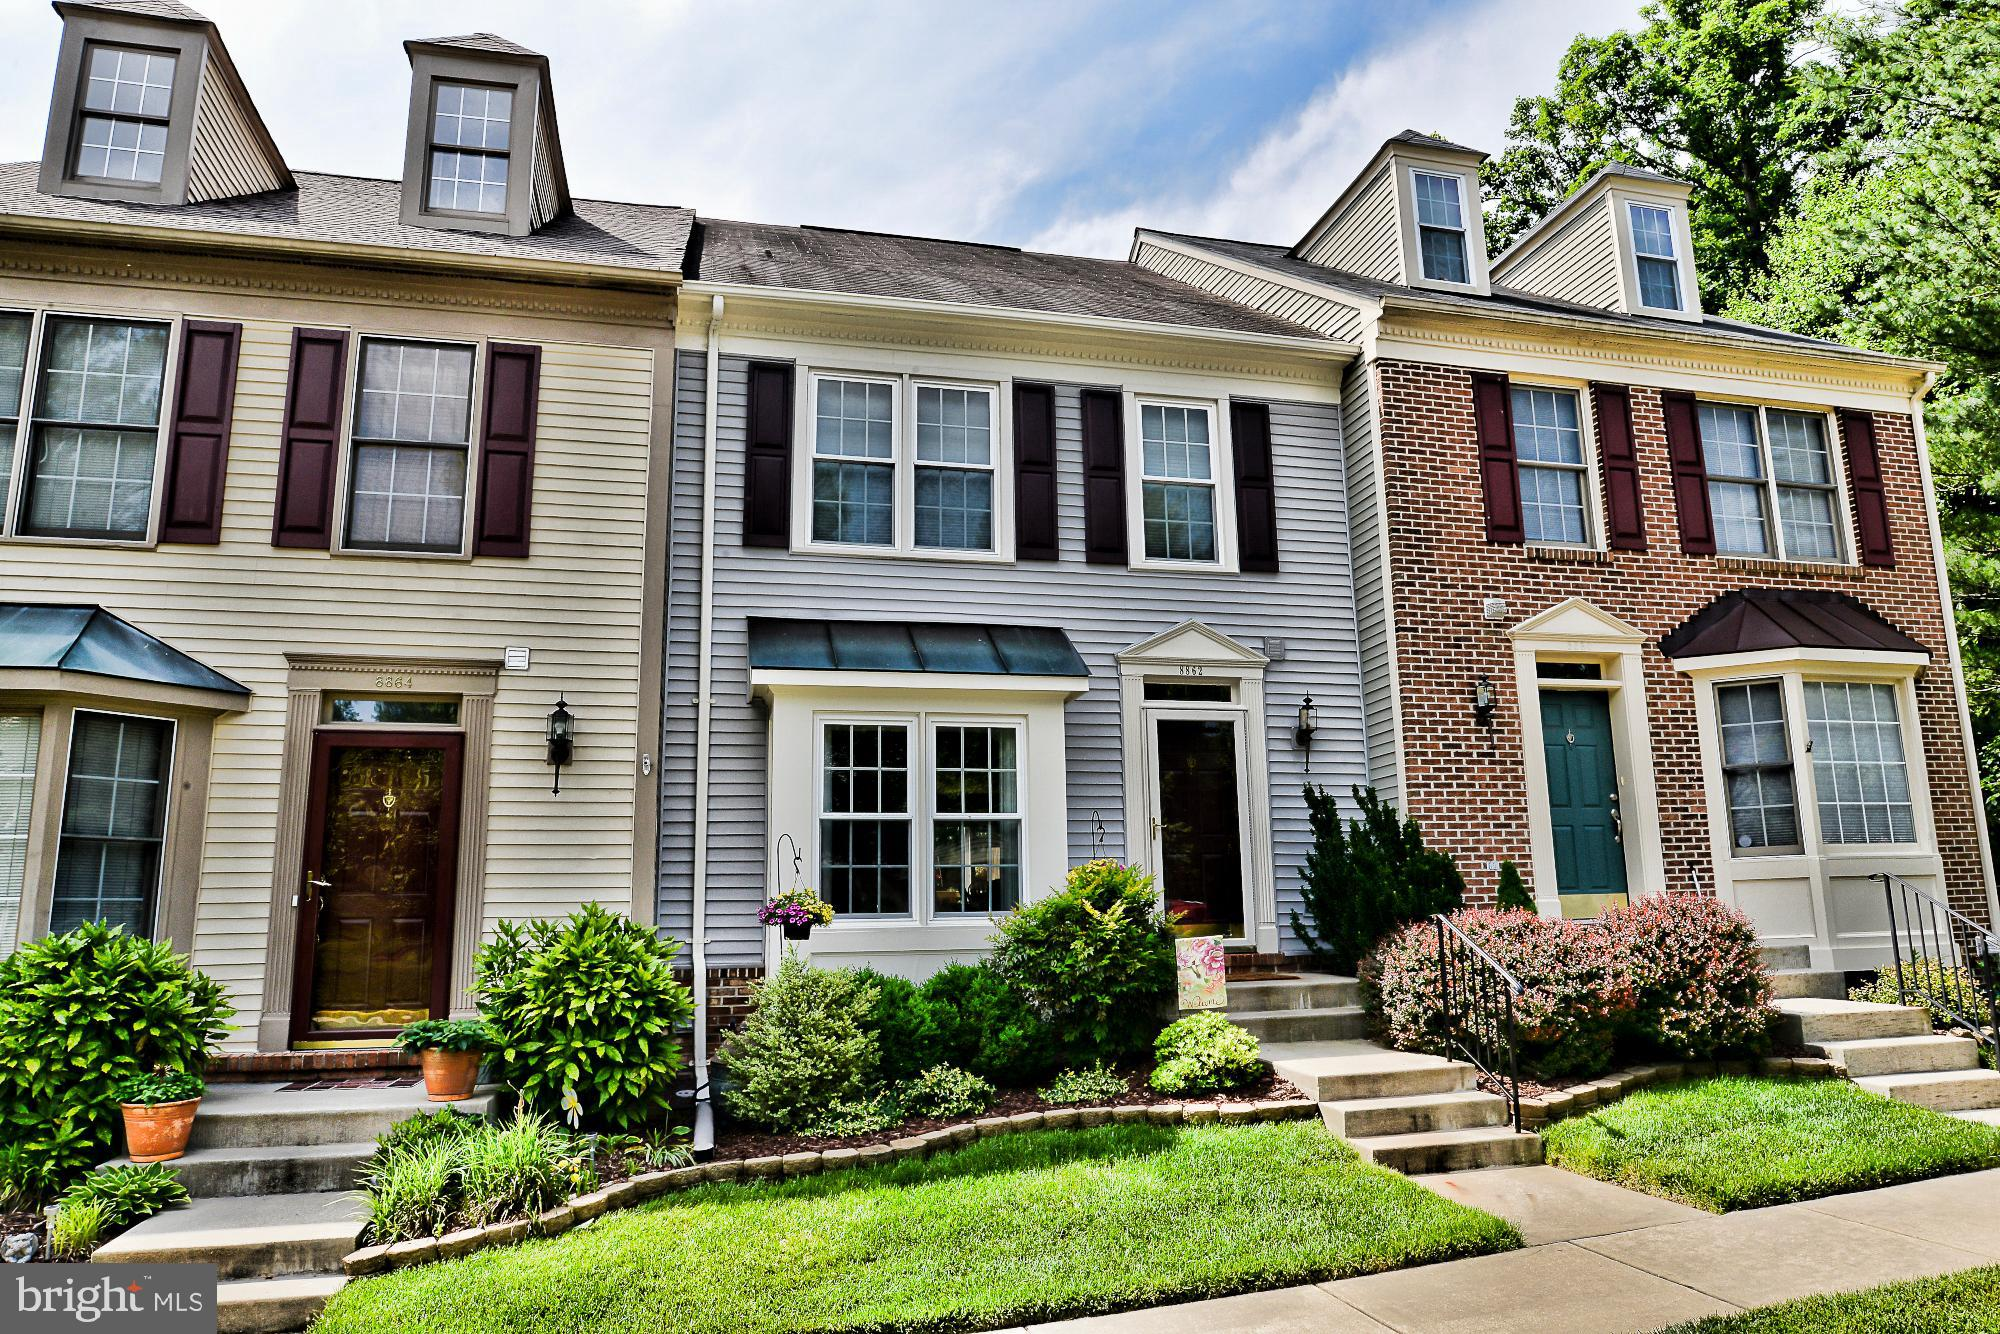 **This is the one that you have been waiting all summer for-Stunning Townhome with tons of upgrades, meticulous condition & backs to woods/trees in private location!Incredible, sun-splashed Kitchen feature: stainless appliances with gas cooking, center island, pendulum & recesssed lighting, Silestone counters, gorgeous new flooring & walk-out to relaxing sundeck with gorgeous scenic view!Gleaming hardwood floors, elegant decor, built-ins & molding adorn main level with great flow for entertaining or quality time.Generous Master Suite, bright & airy w/vaulted ceilings, huge walk-in closet & completely remodeled master bath too!Spa-like bath features: oversized shower with seamless glass doors, dual sink recessed panel vanity, granite counter, contemporary lighting, designer mirrors & plumbing fixtures, comfortable soaking tub & custom tile-inlay throughout, vaulted ceilings & palladium window too! Additional bedrooms & hallway also offer high, vaulted ceilings, ample closet space & an upgraded hall bath w/shower/tub combo. Expansive daylight lower level has rec room/great room with cozy gas FP, home office area with hardwood flooring, full bath, gigantic, organized storage/laundry room & walk-out to backyard which opens to common ground & then woods/trees & little stream. Close to everything that this area of Northern Virginia has to offer but tucked away in a secluded townhome neighborhood that doesn't feel congested!